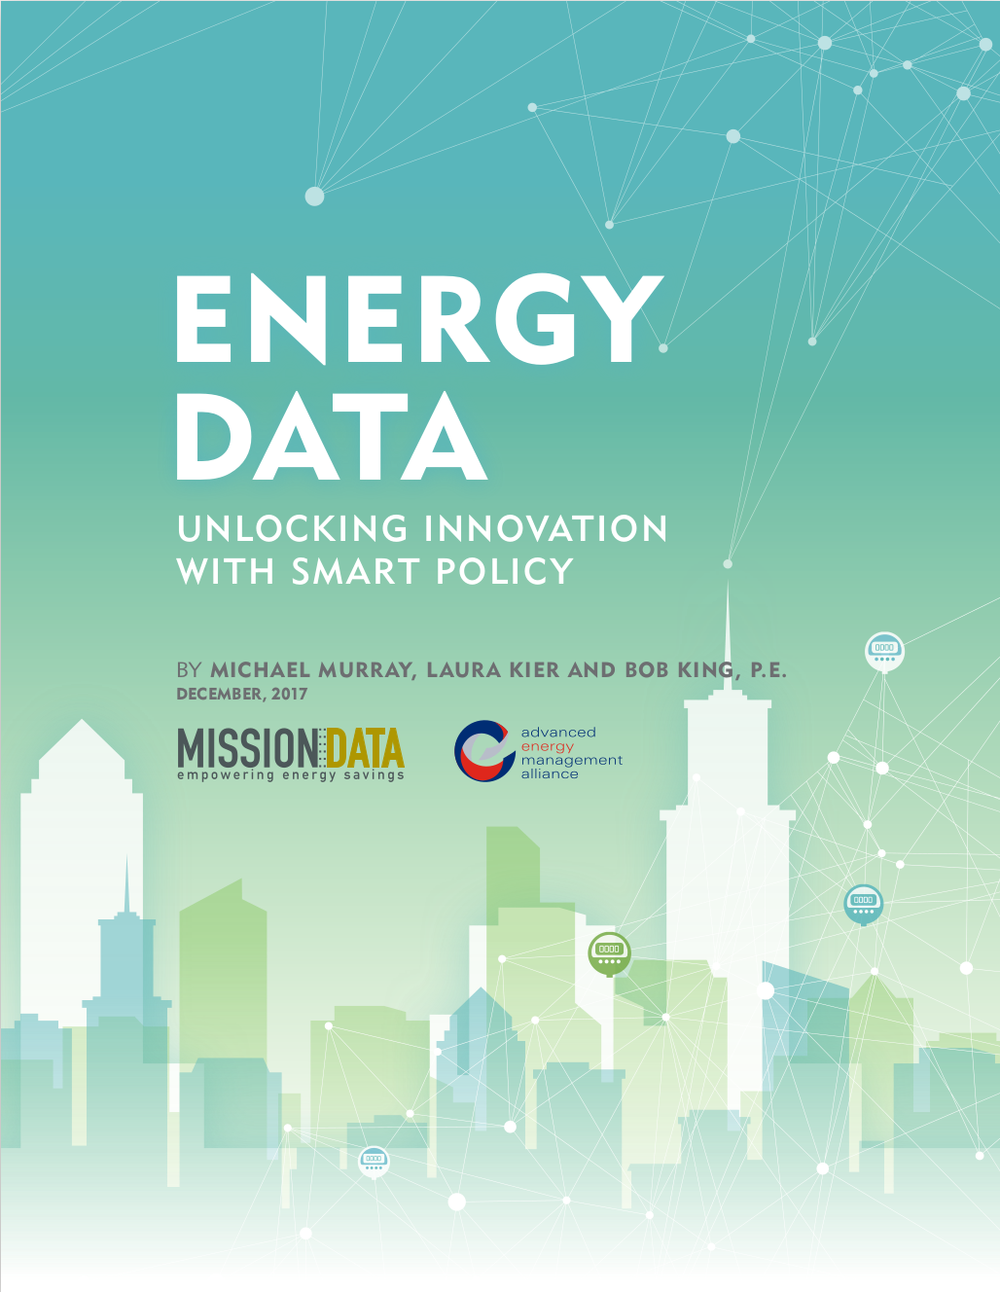 energy-data-unlocking-innovation.png